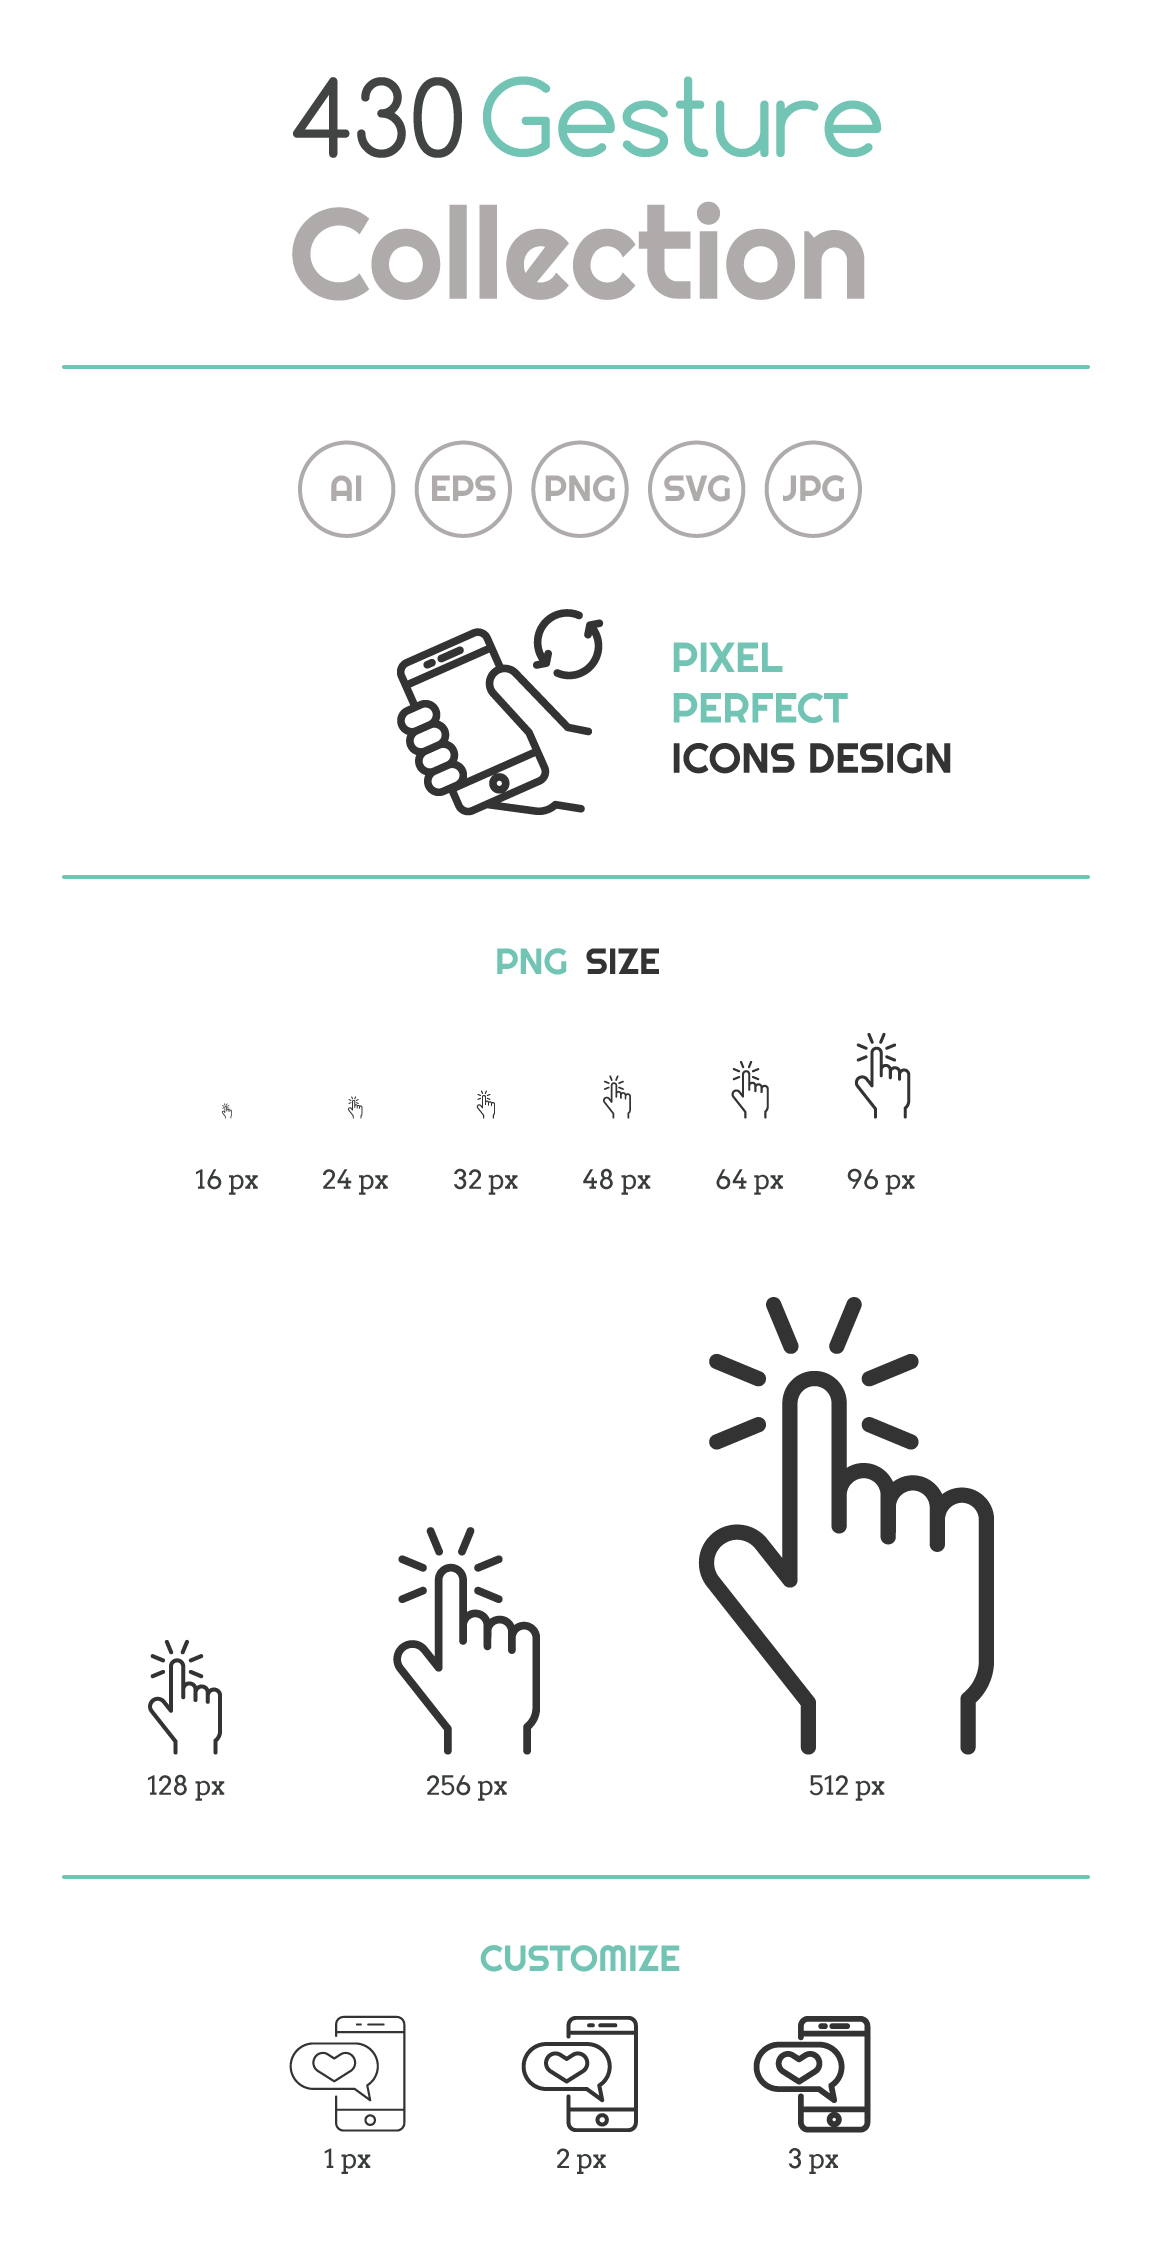 430-gesture-icon-collection-01